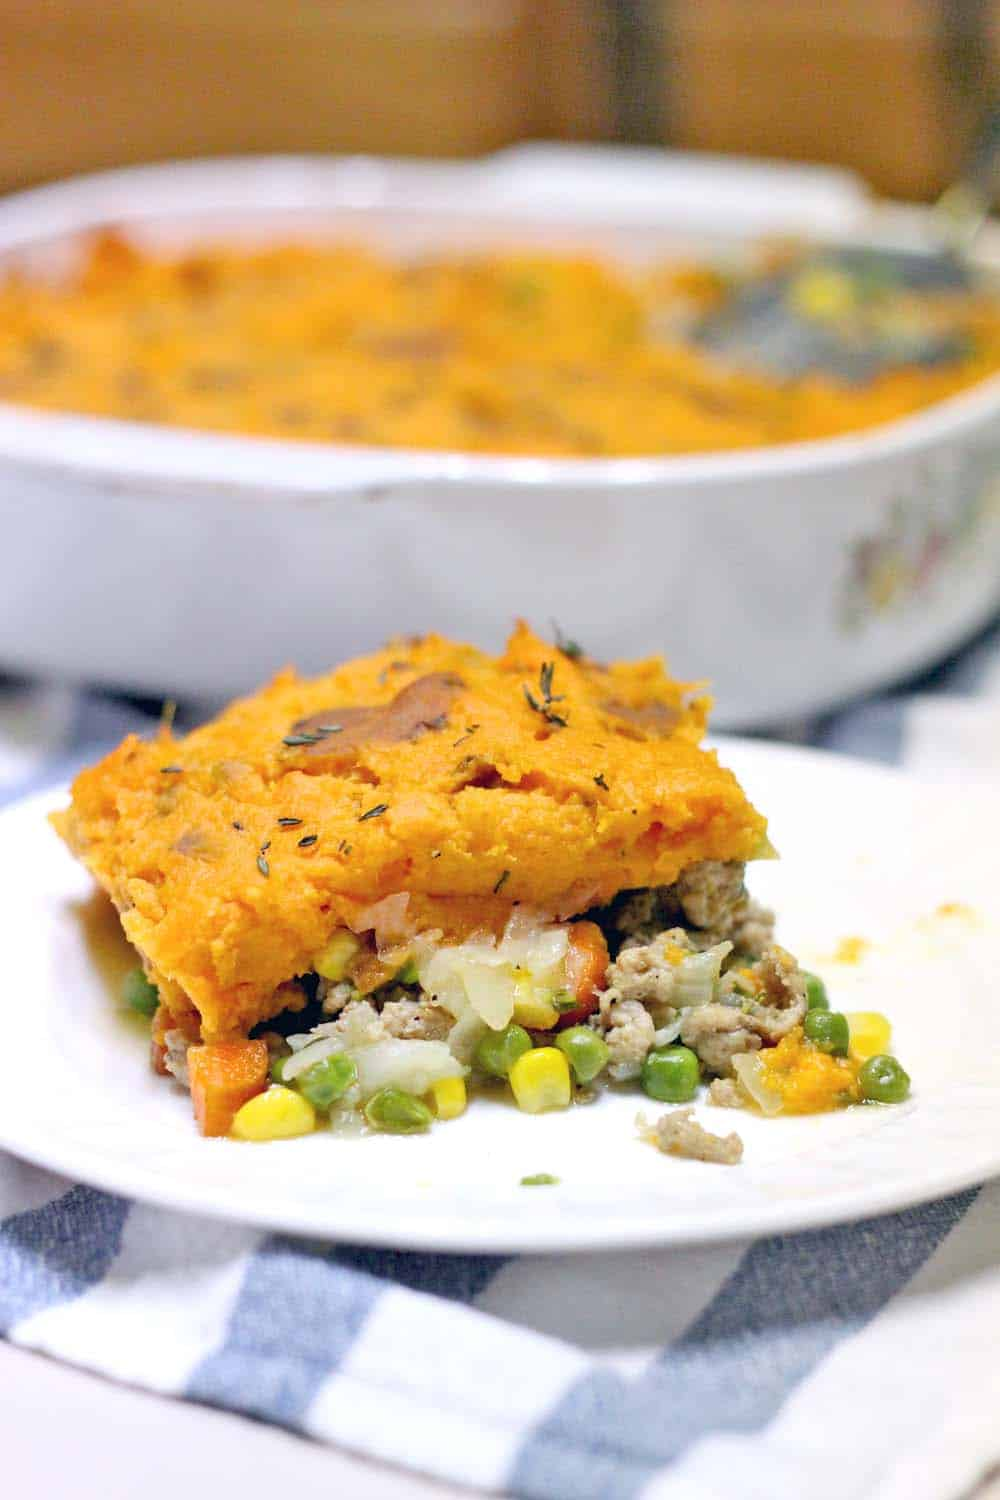 This shepherd's pie is the ultimate comfort food: simpler and easier to make than a traditional one, and healthier with sweet potatoes and ground turkey.